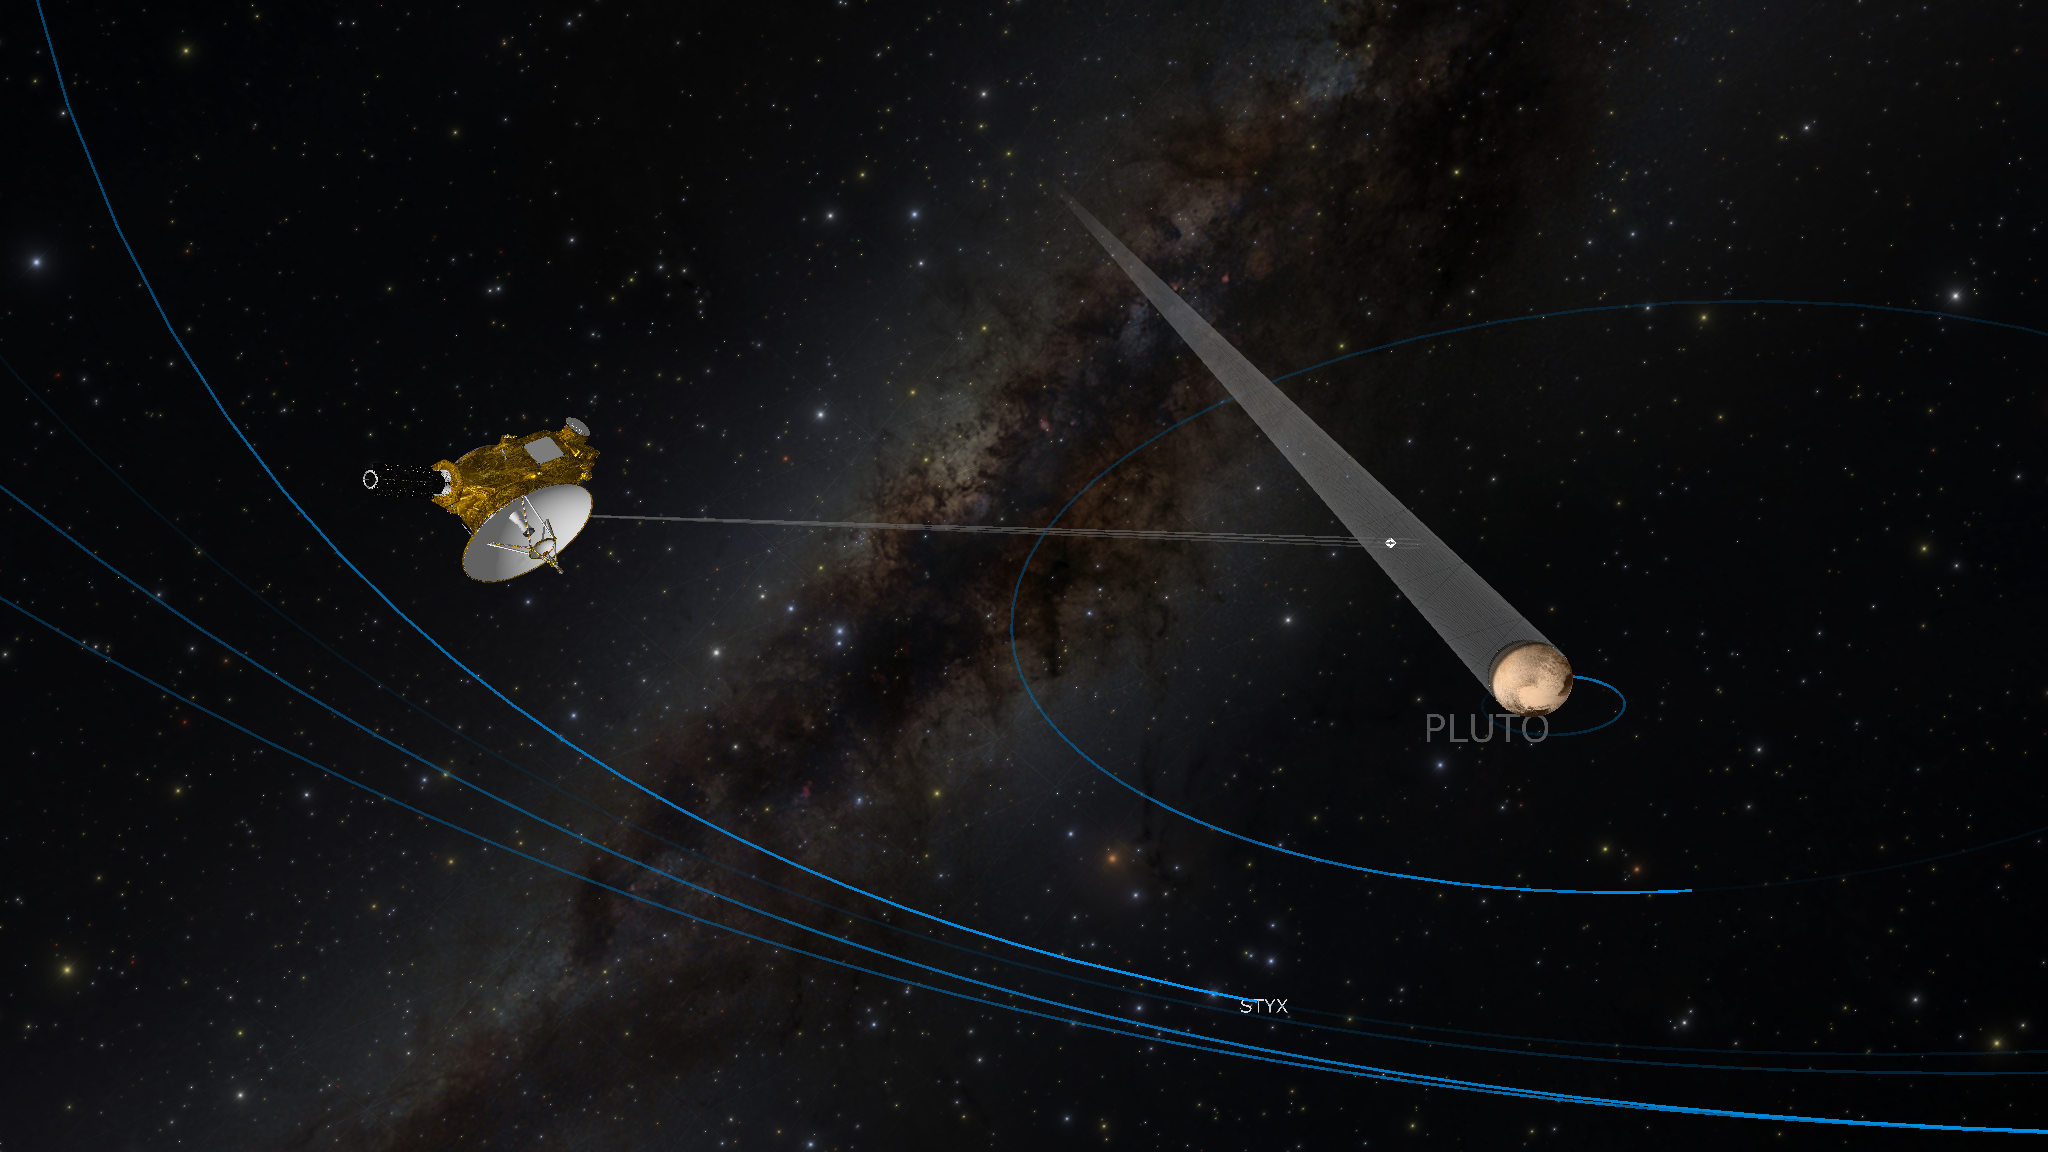 New Horizons' Encounter of the Pluto System